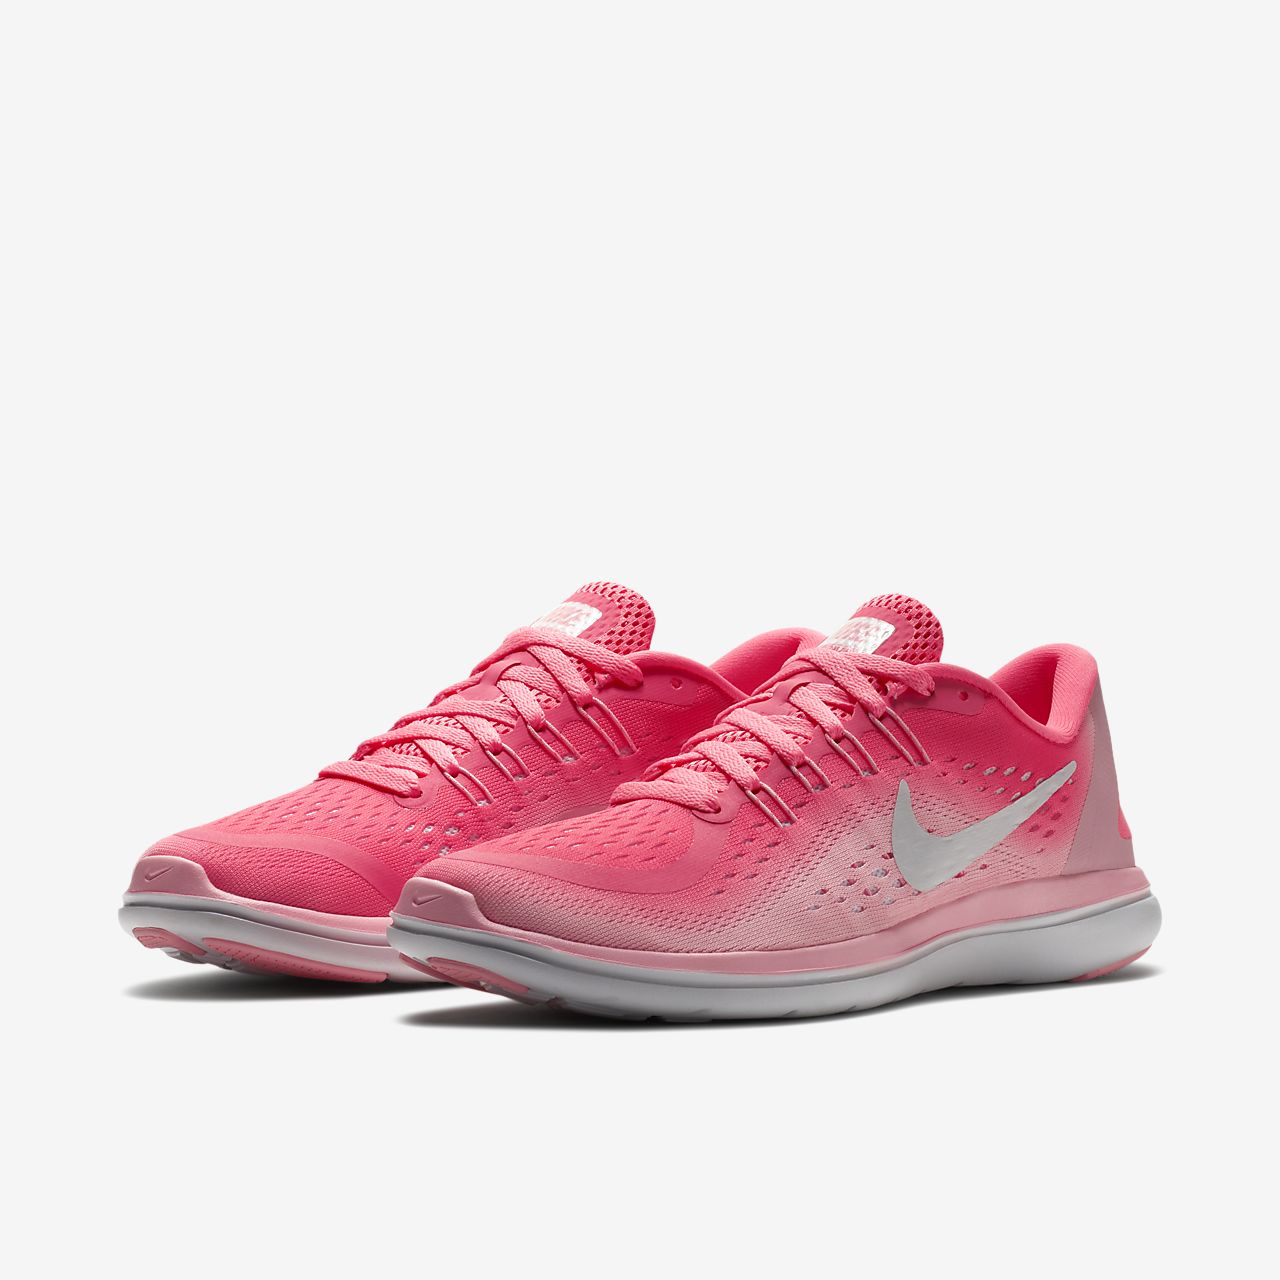 Nike WMNS Flex 2017 RN [898476-601] Women Running Shoes Sunset Pulse/Hot Punch